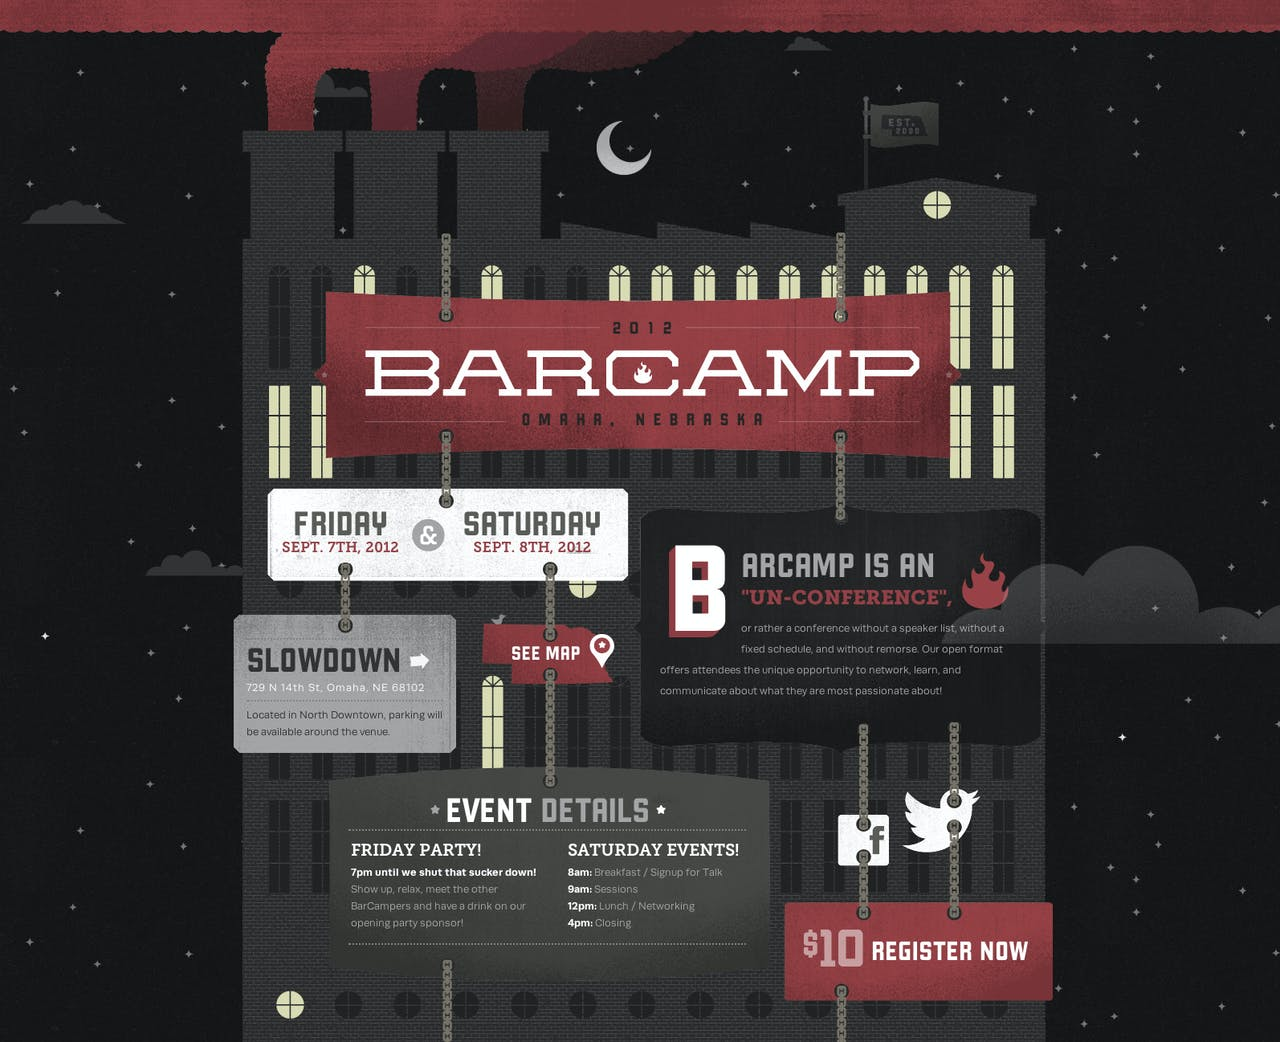 Barcamp Omaha 2012 Website Screenshot